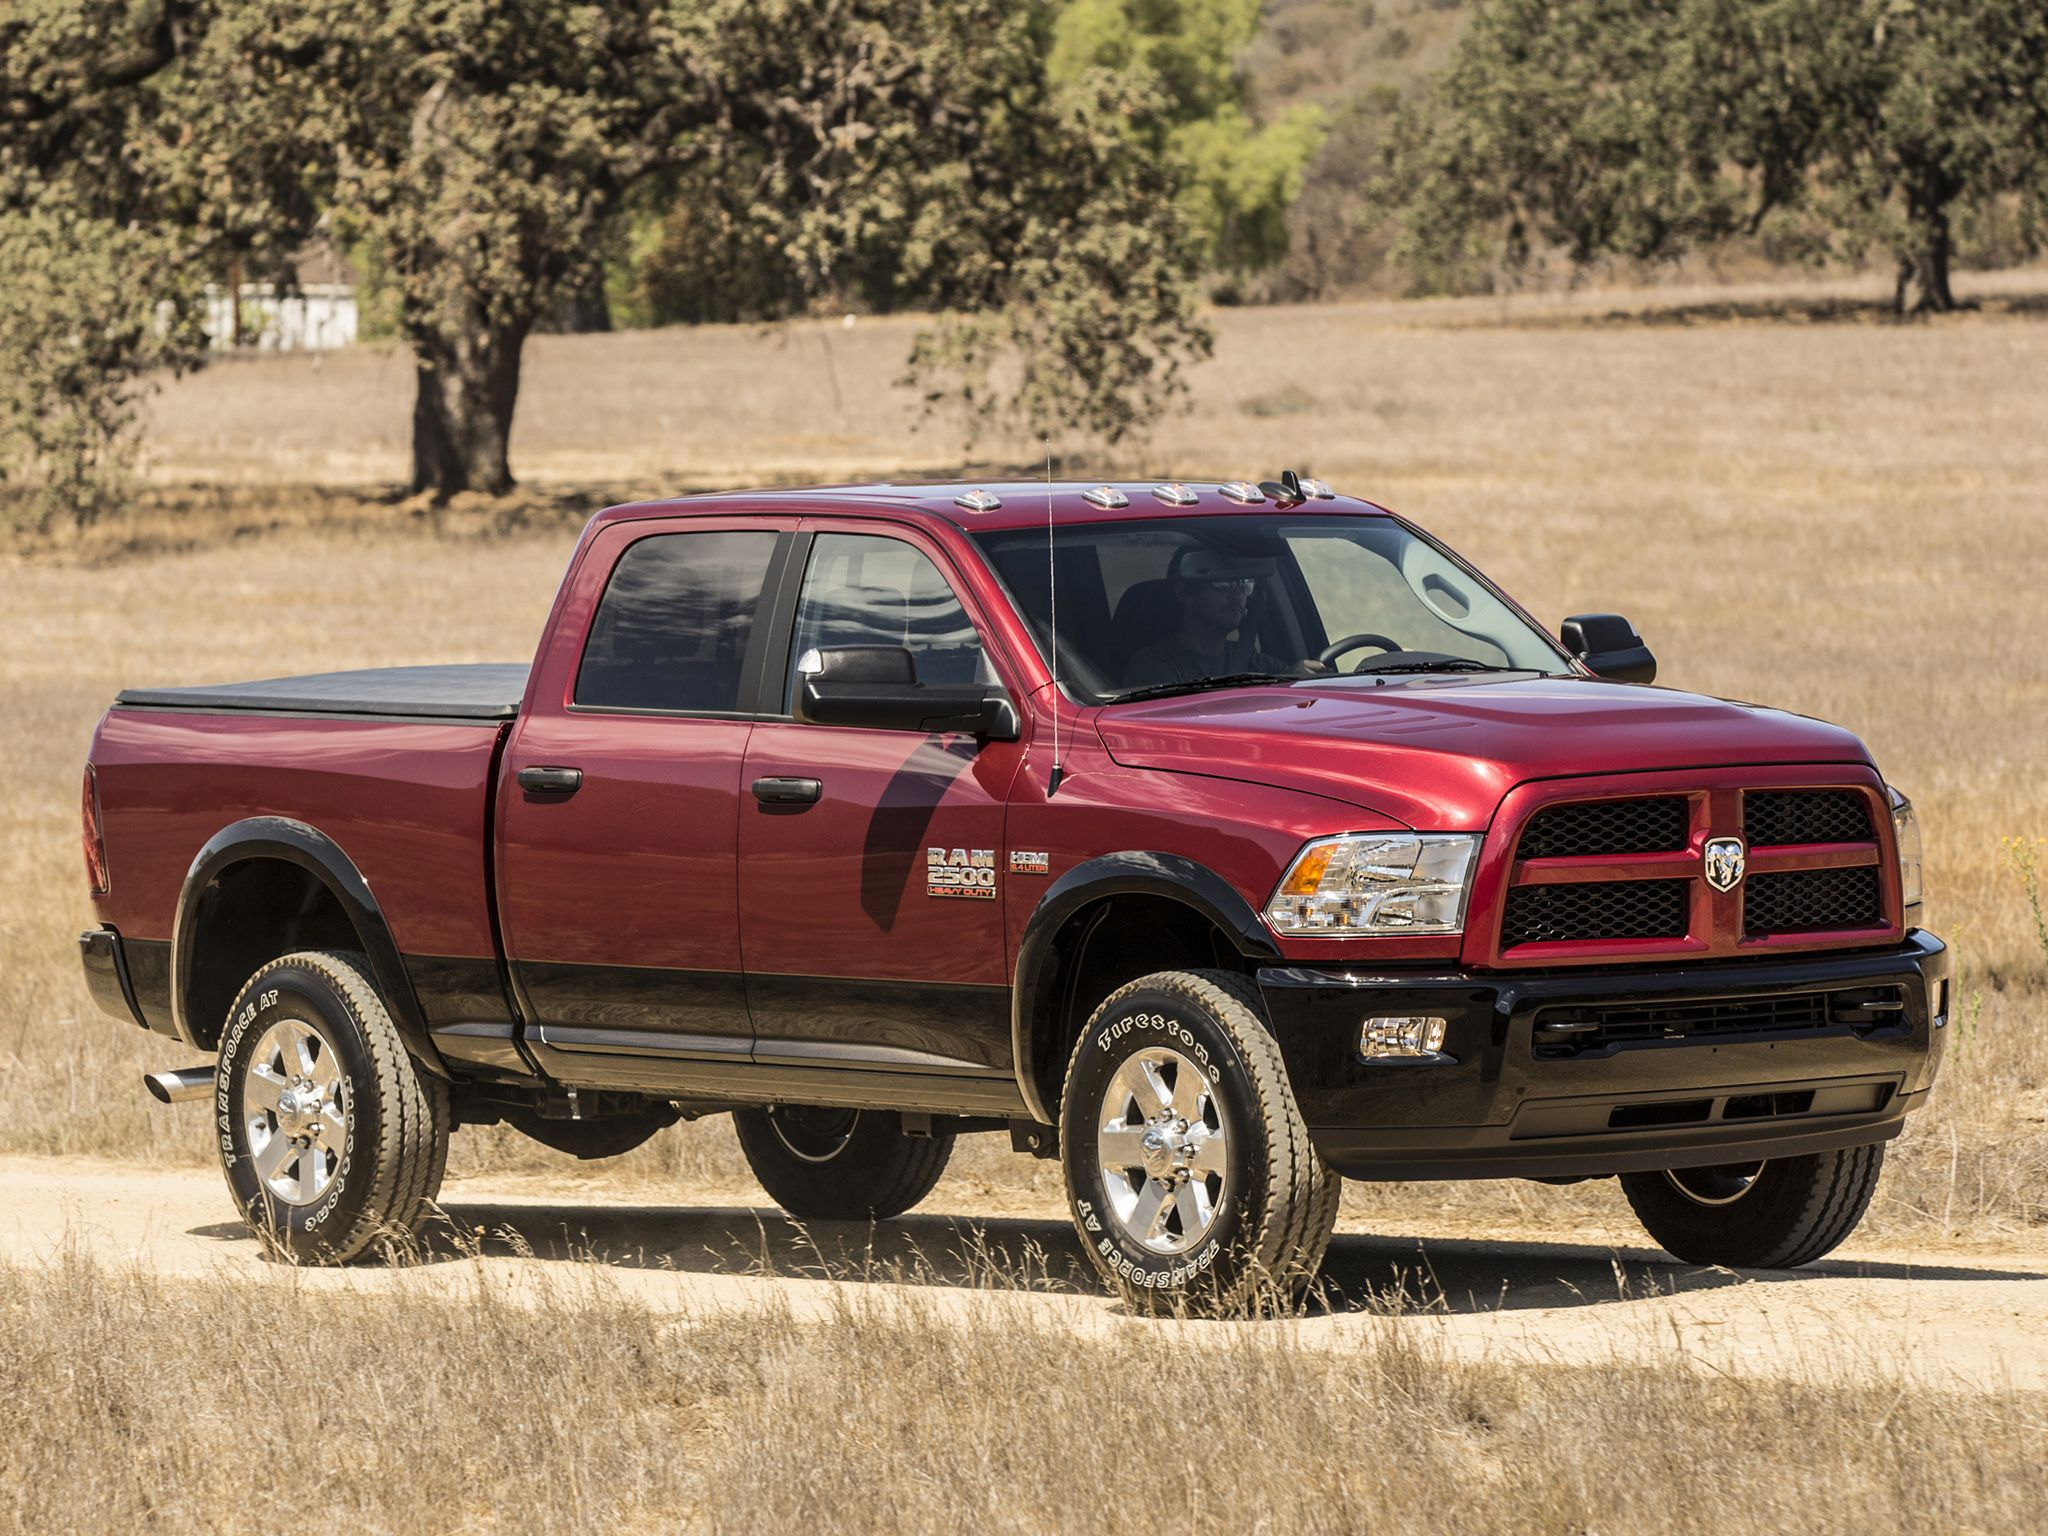 2014 dodge ram heavy duty specification ram truck brand offers the heavy duty pickups better able to segment line features of the ram heavy duty 2014 a